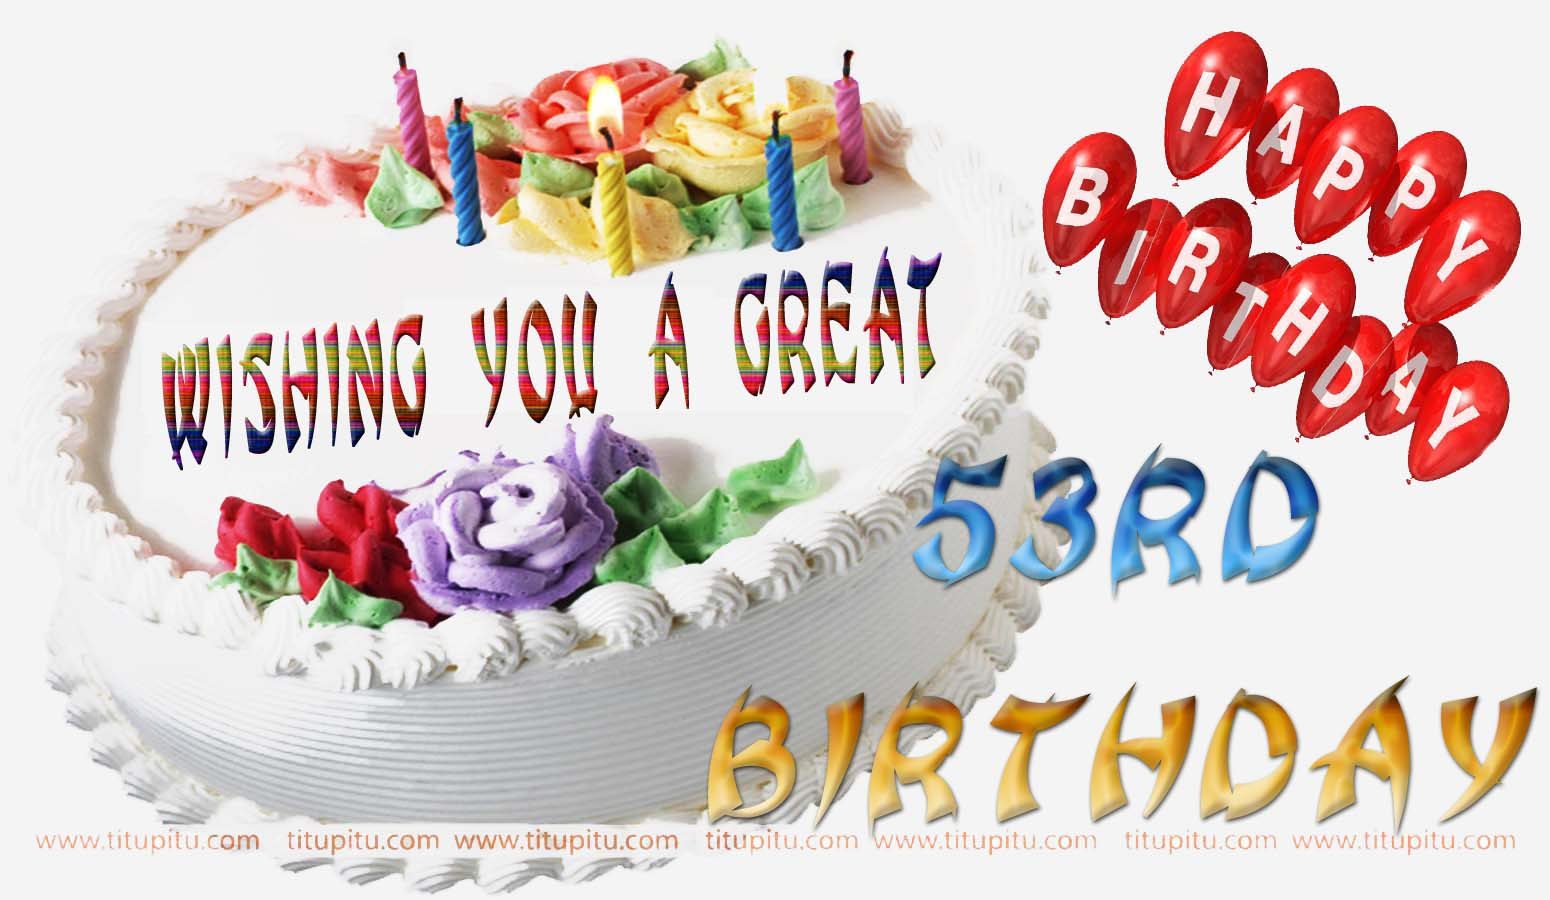 53rd birthday wishes message and wallpaper for everyone haryanvi 53rd birthday wishes message and wallpaper for everyone m4hsunfo